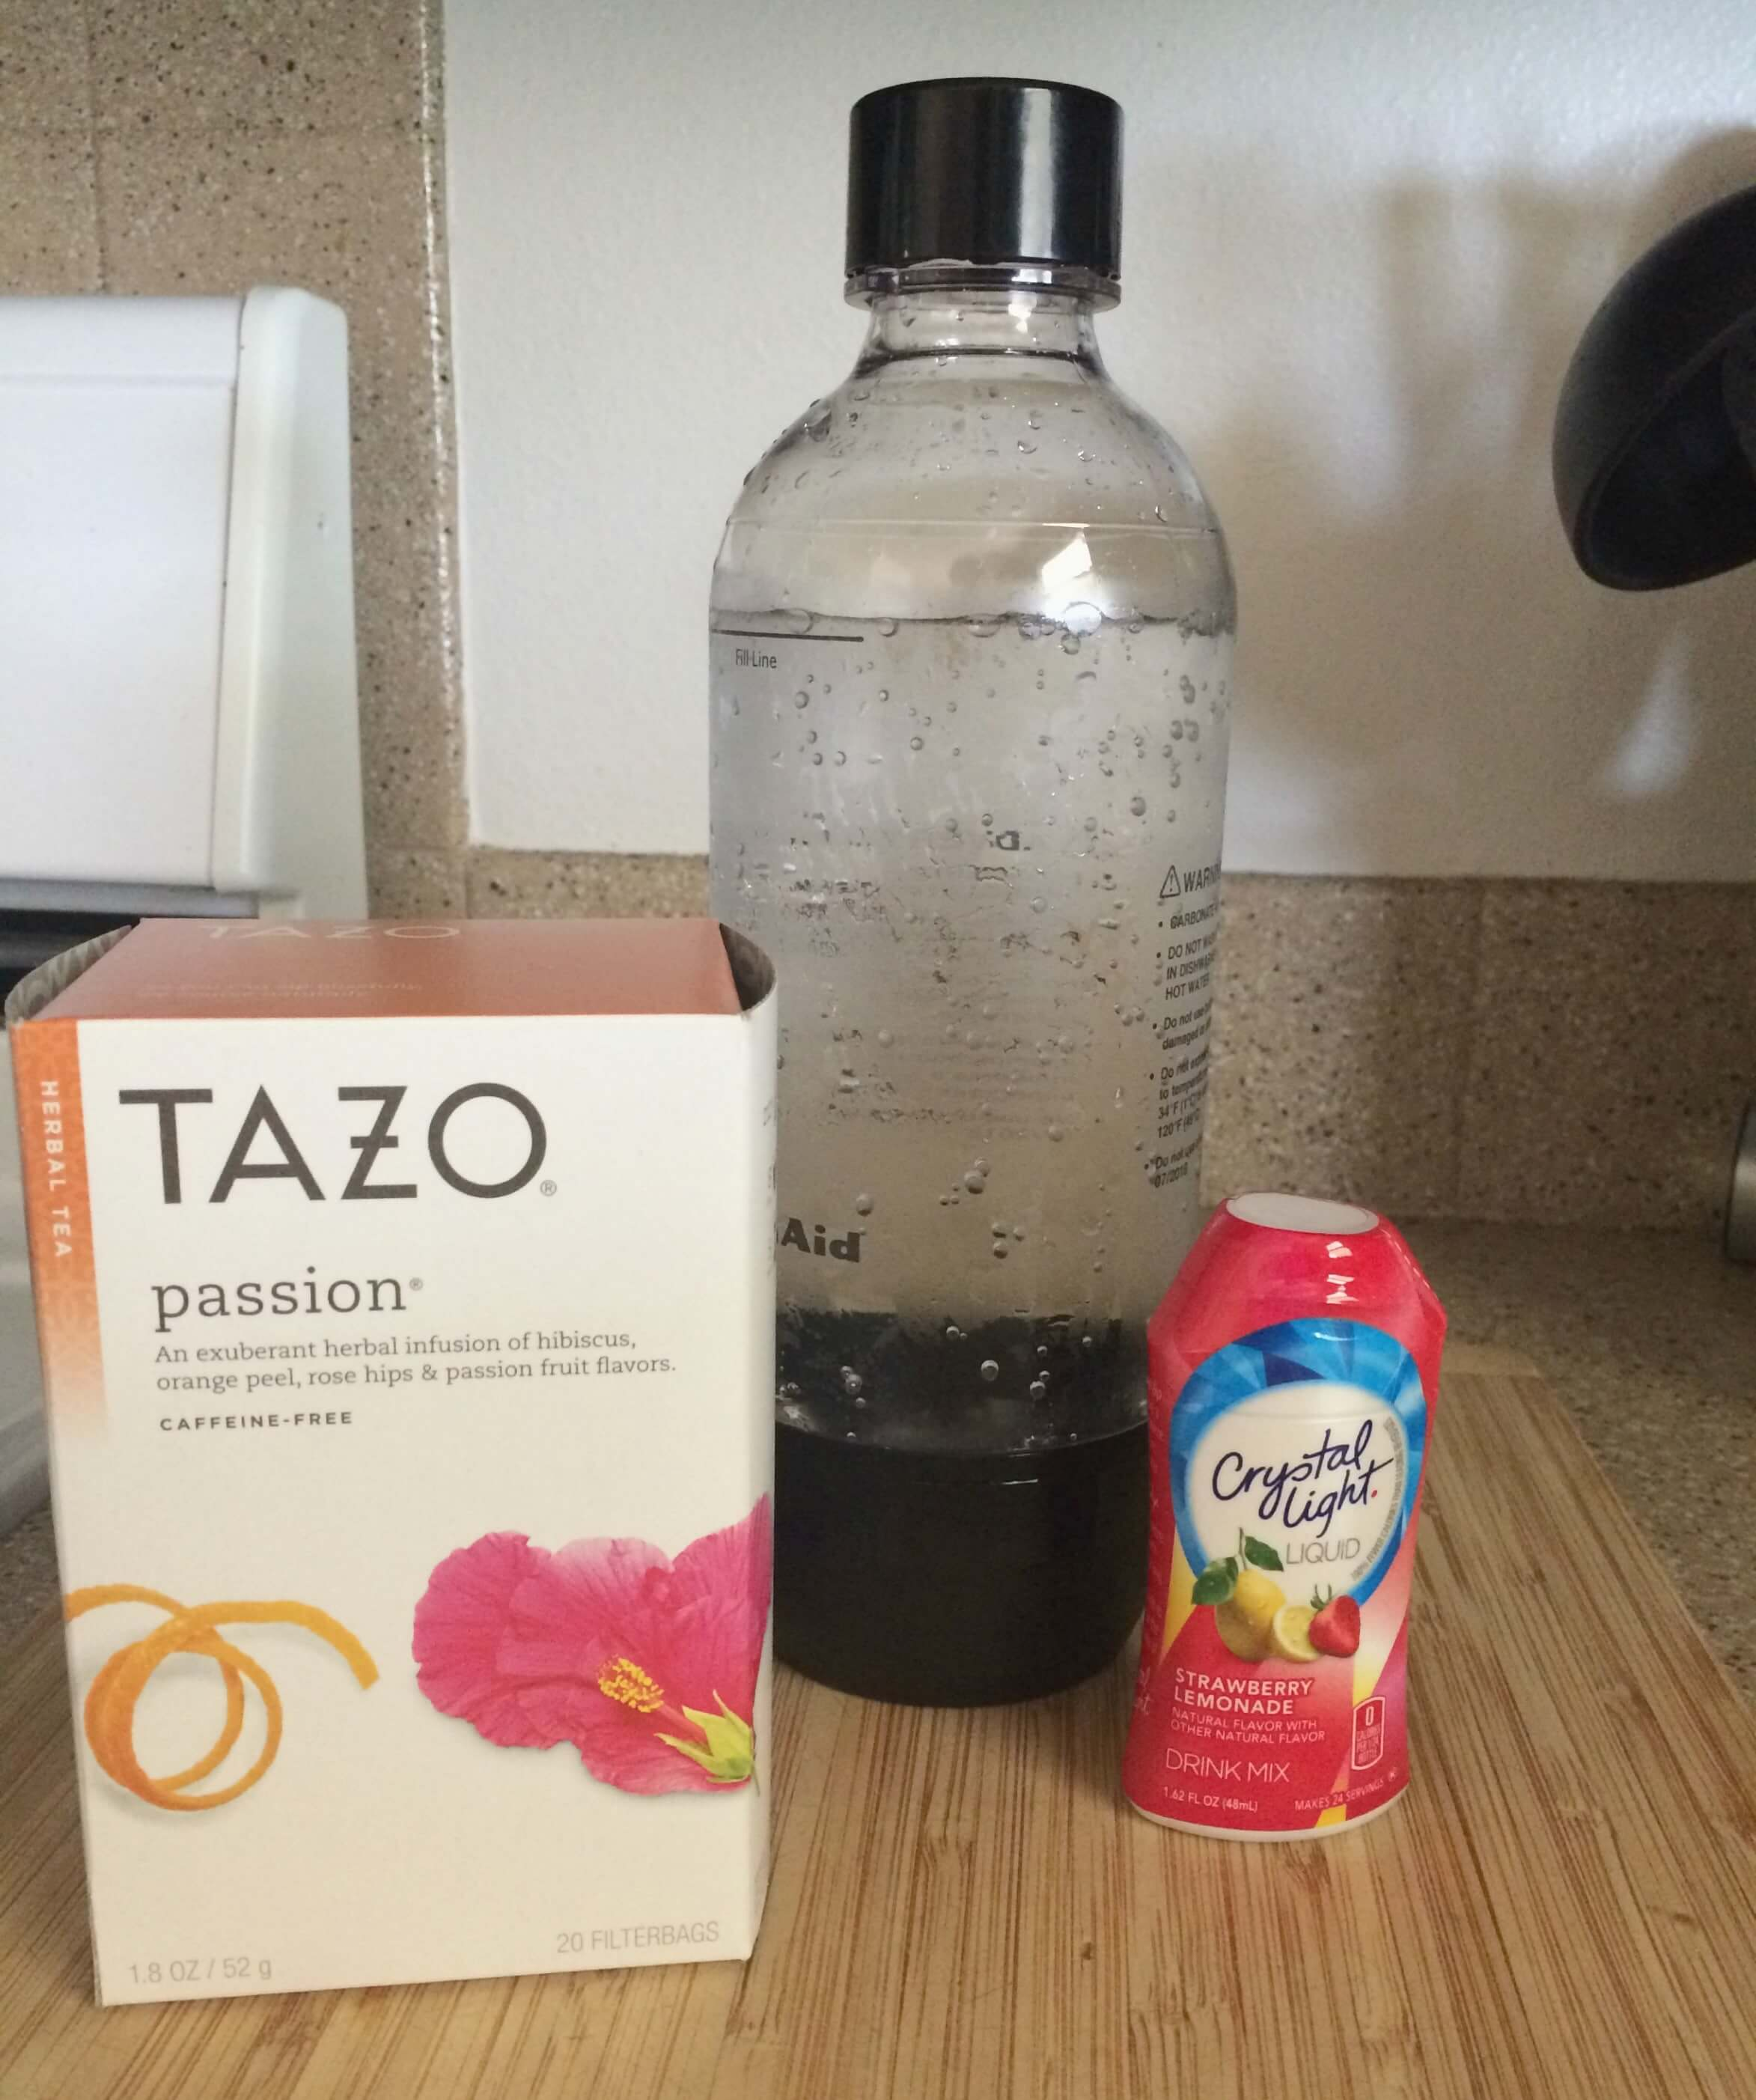 Sparkling Iced Tea and Lemonade ingredients